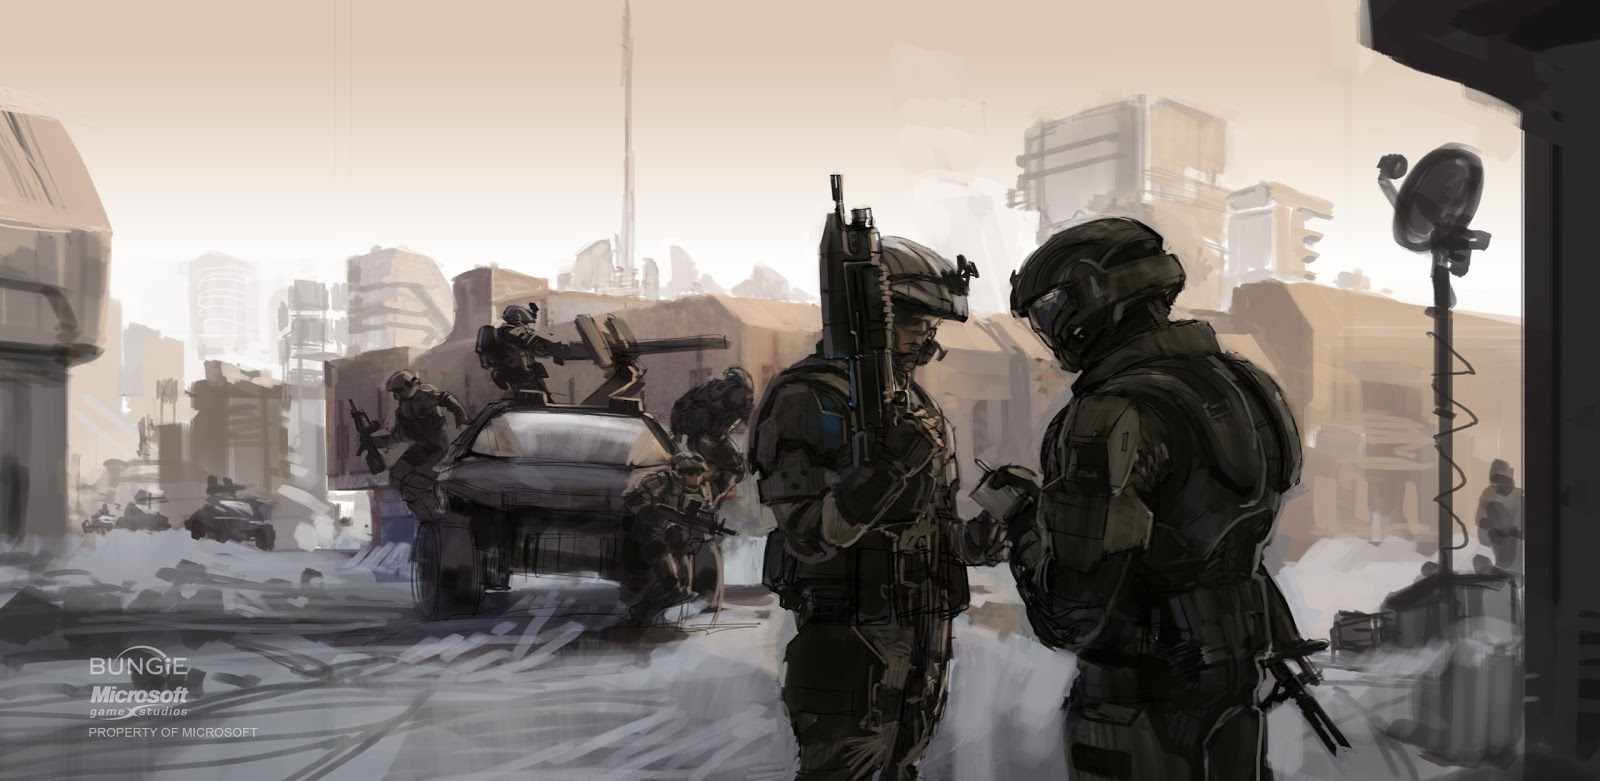 Halo 3: ODST Concept Art – Concept Art World